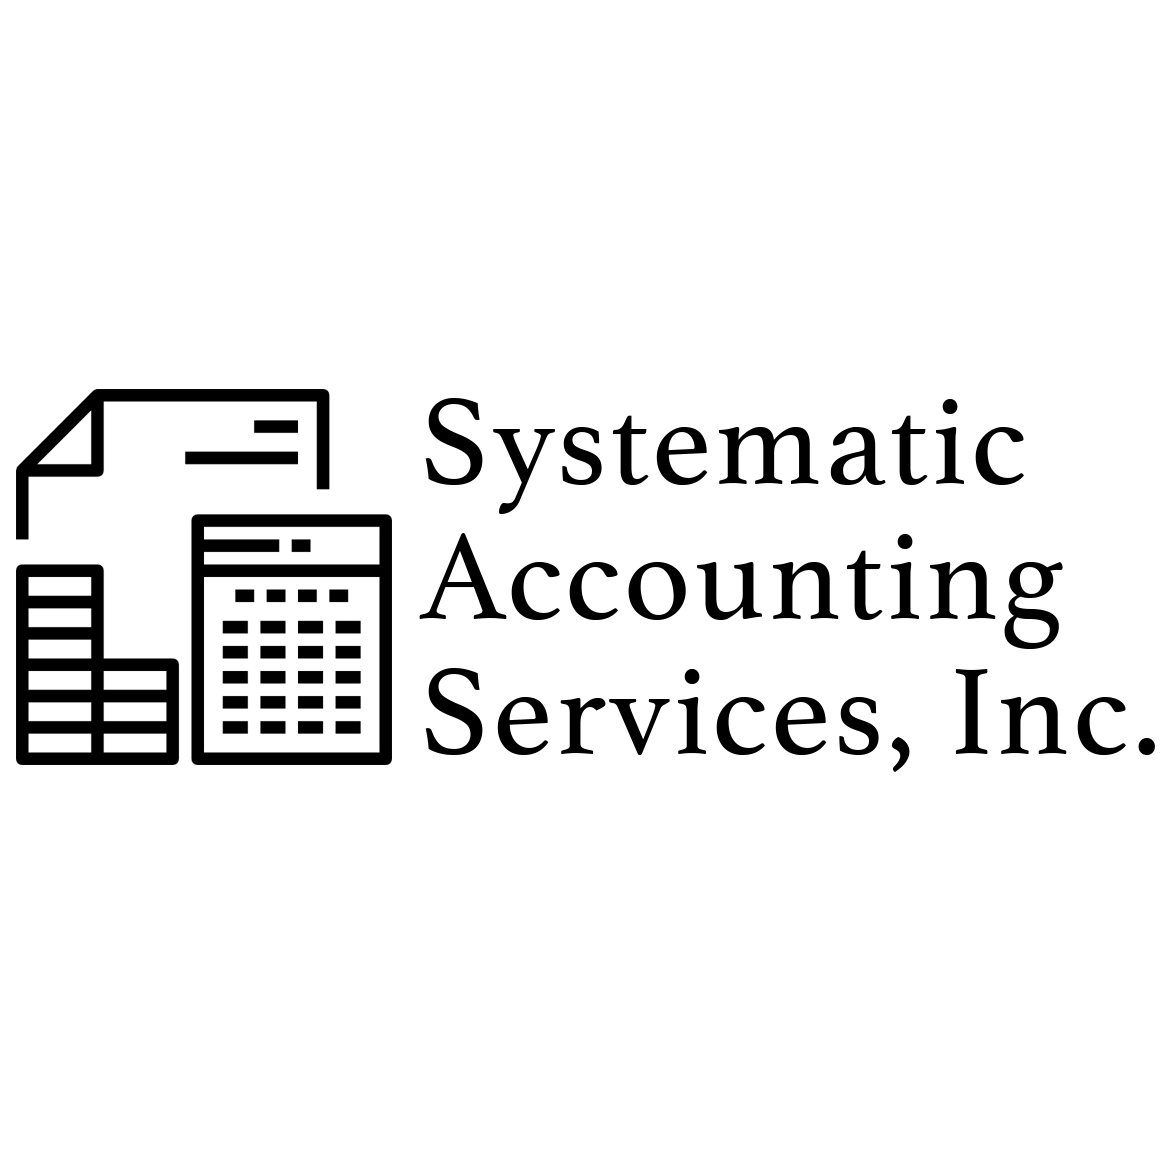 Systematic Accounting Services, Inc, Birmingham Alabama